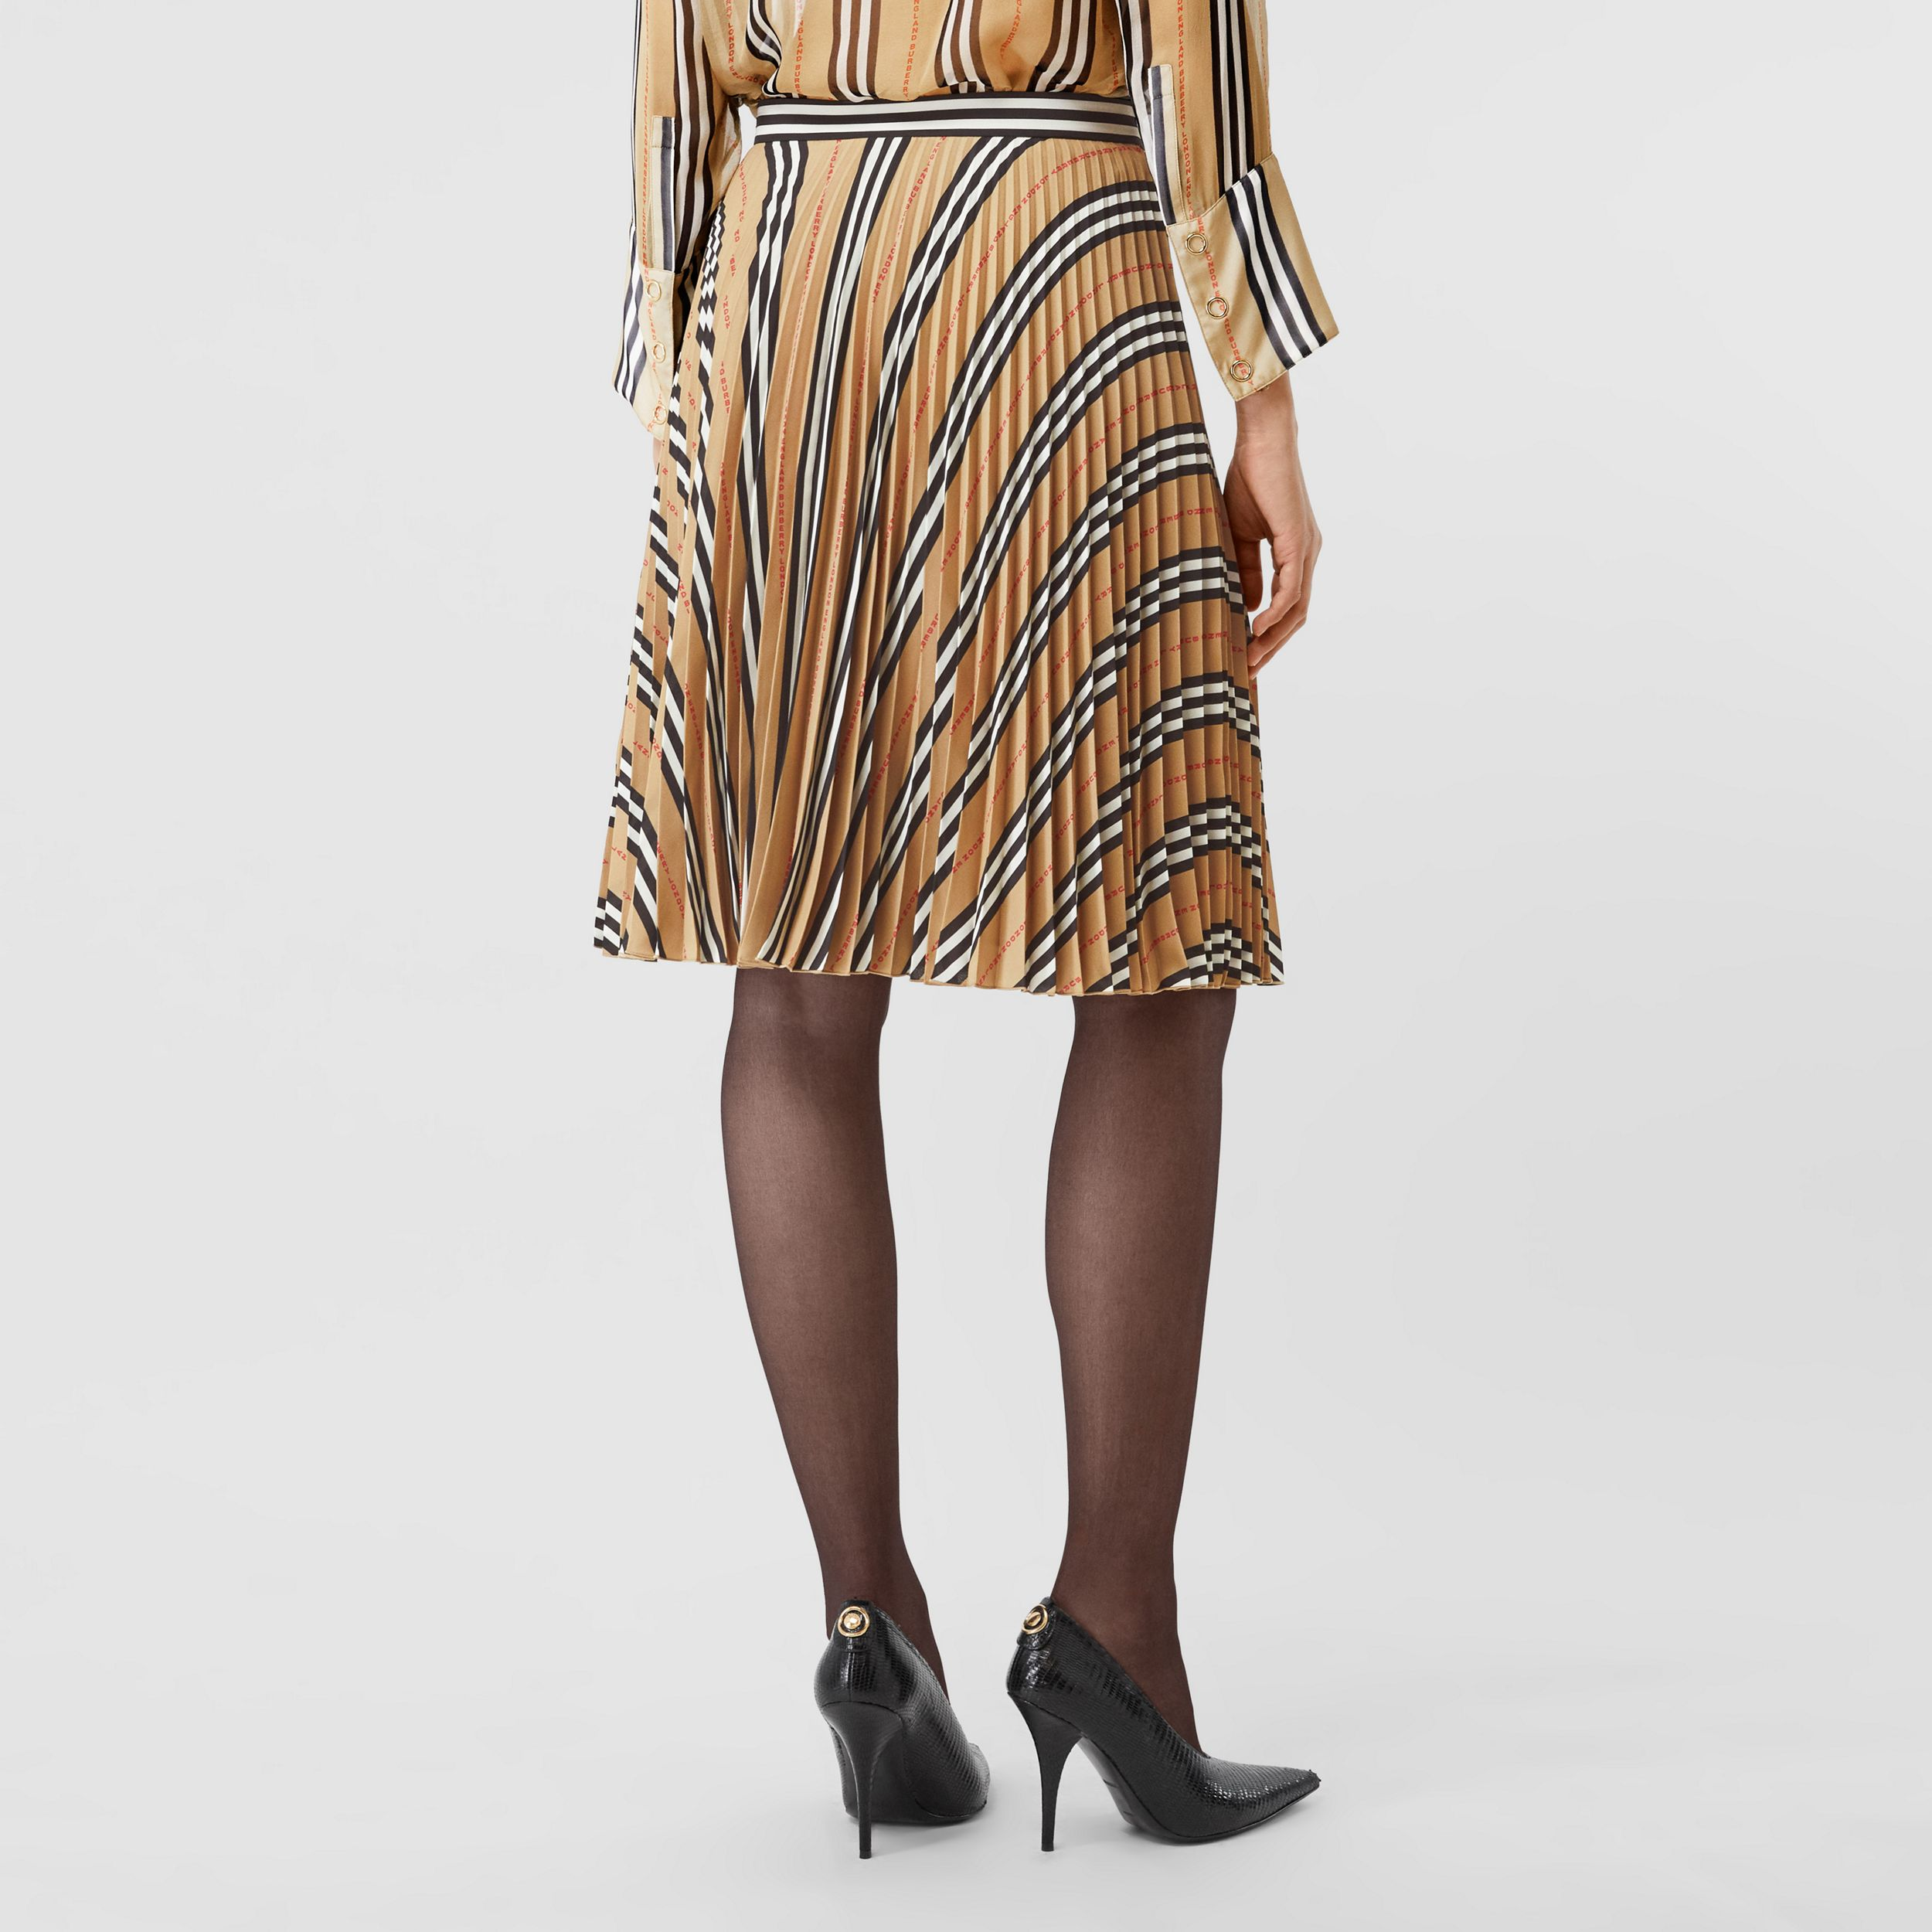 Logo and Stripe Print Crepe Pleated Skirt in Archive Beige - Women | Burberry United States - 3